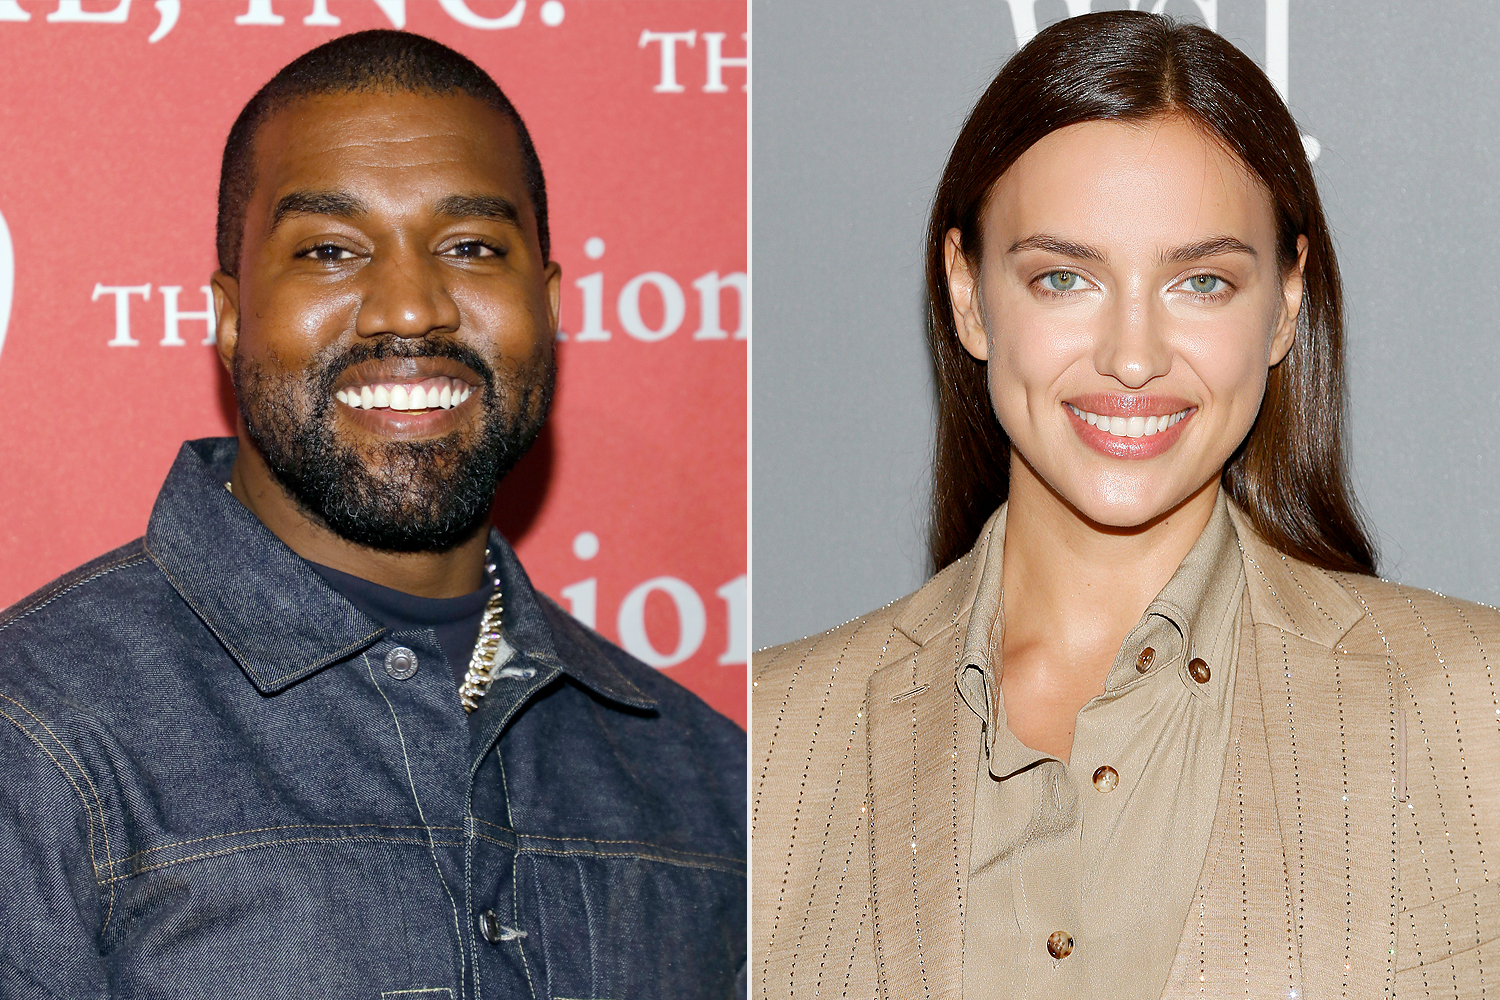 """""""kanye-west-and-irina-shayk-inside-their-relationship-a-month-after-being-linked-romantically"""""""